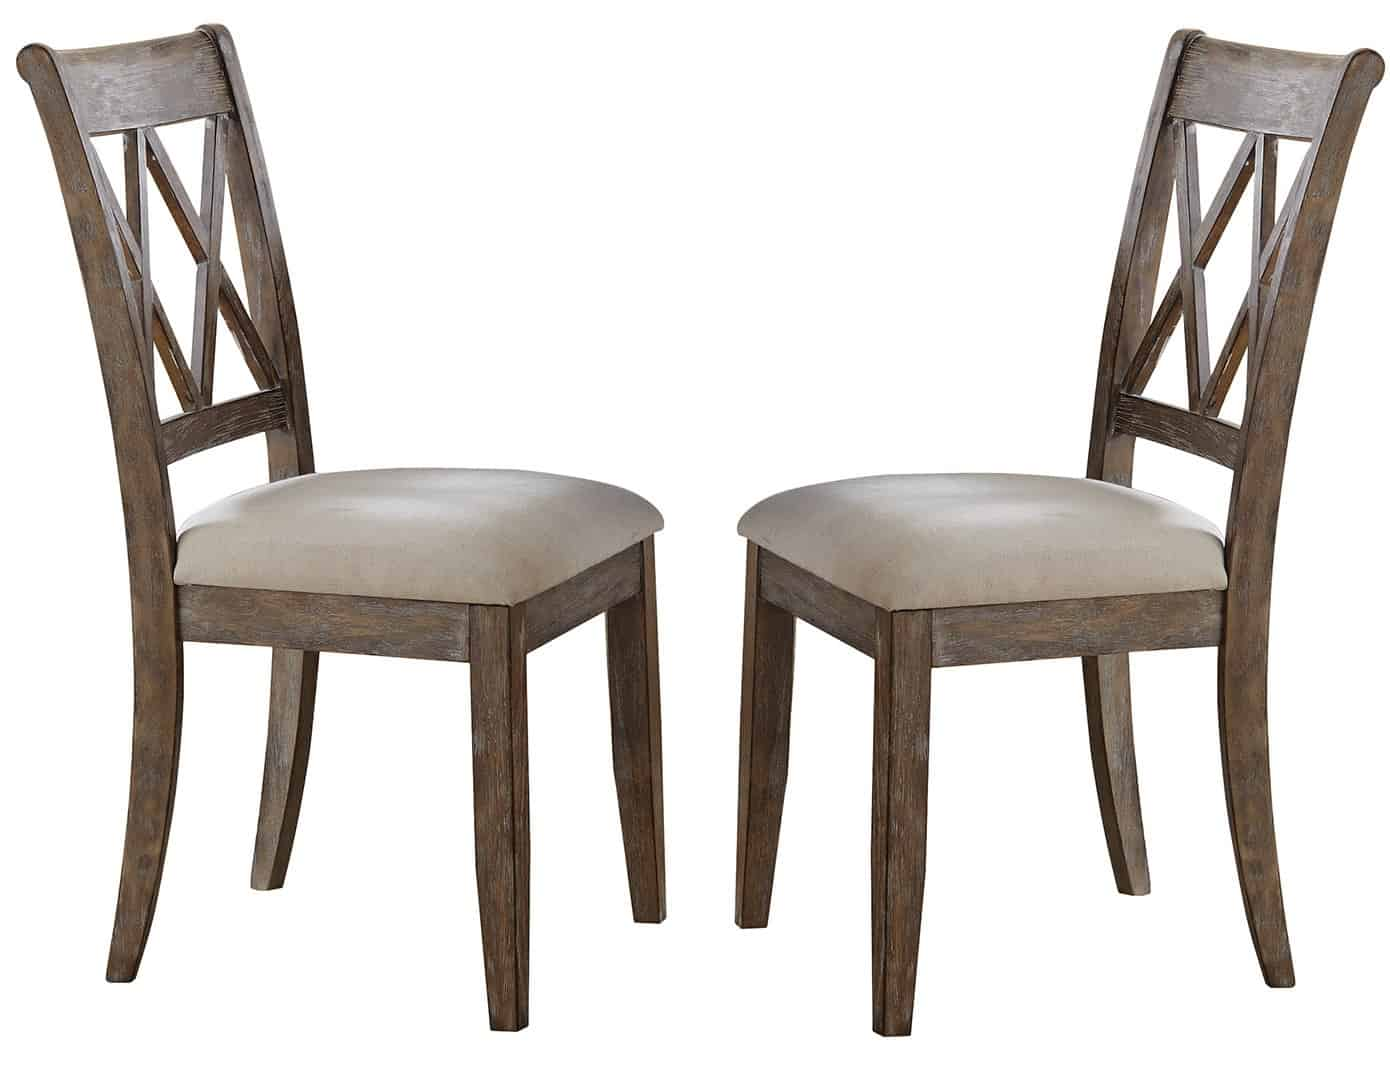 clearmont upholstered dining chair & reviews | joss & main for Decorating With Country Chairs